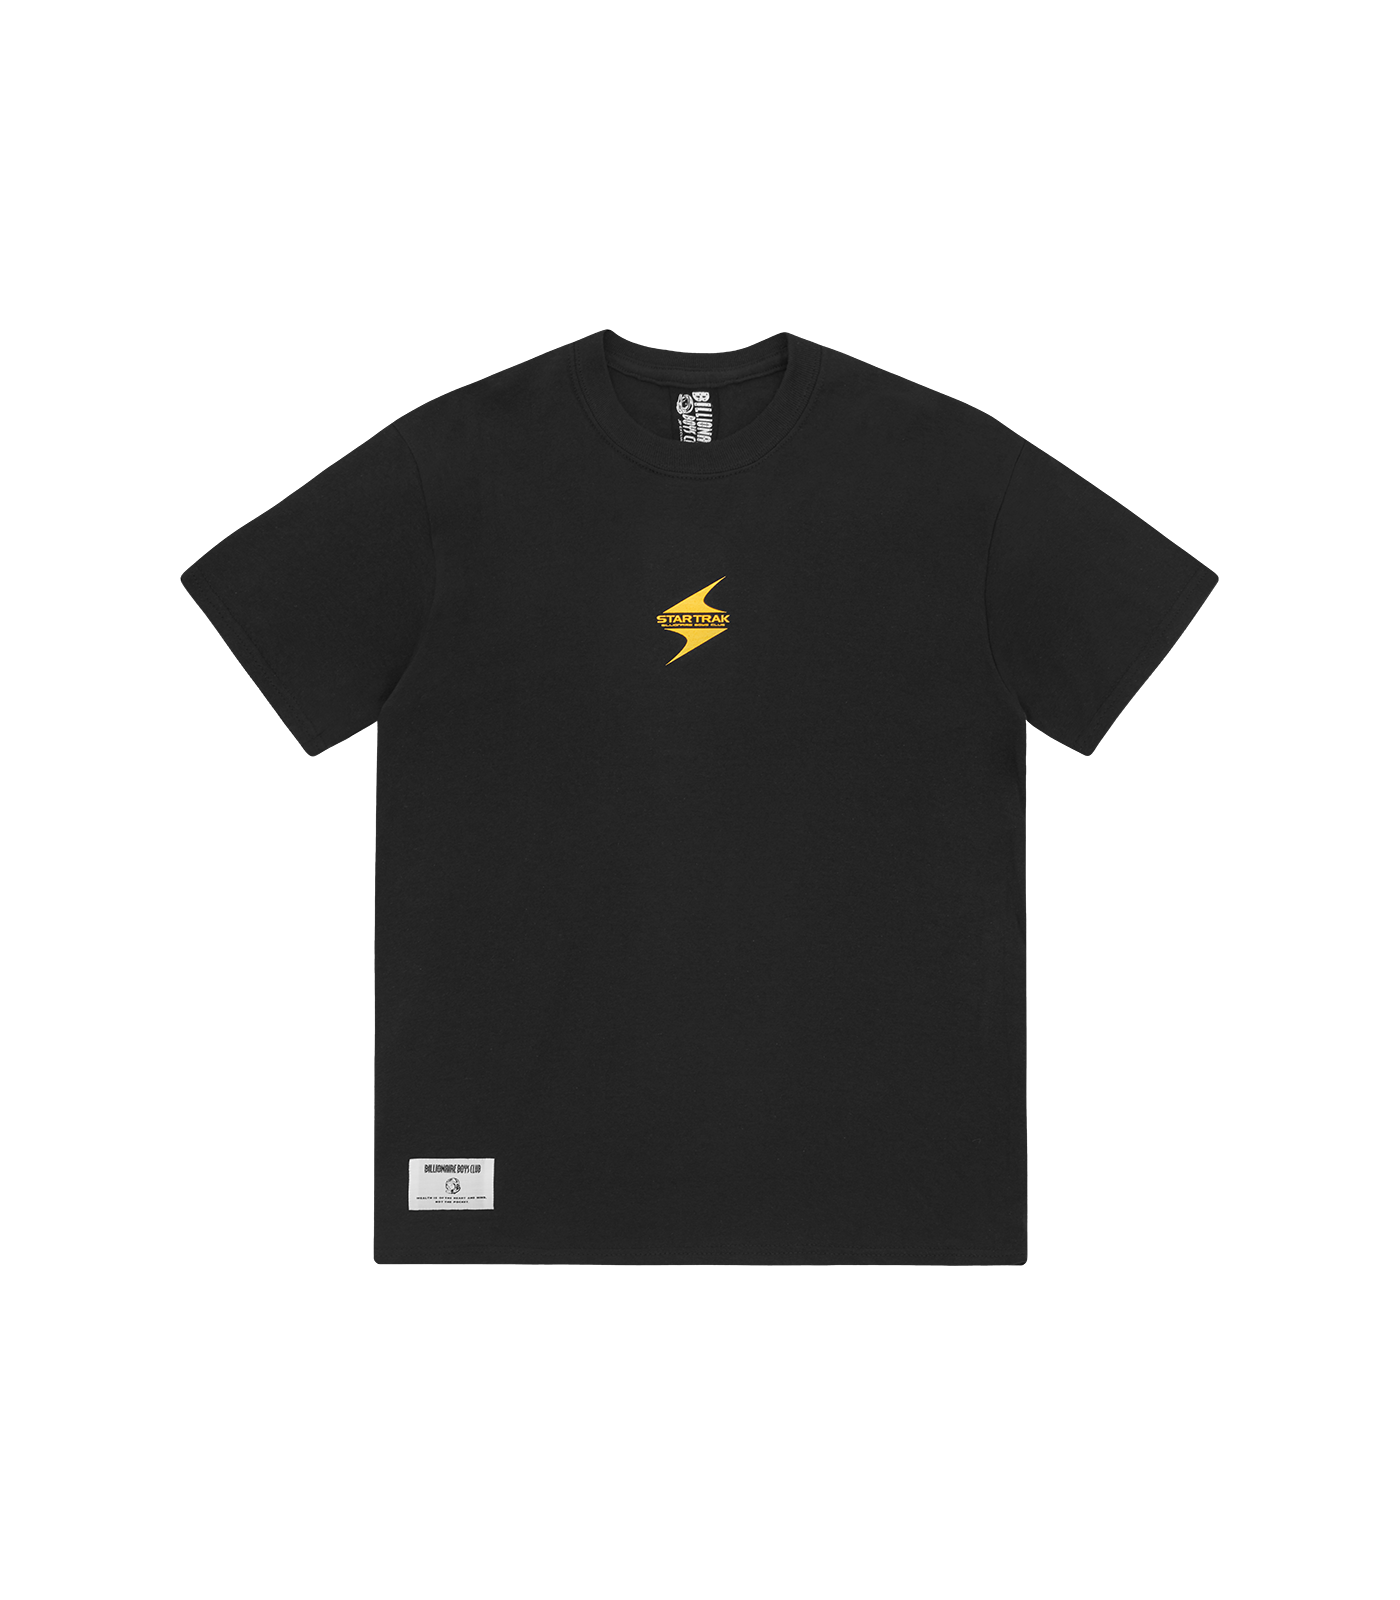 STARTRAK LOGO T-SHIRT - BLACK